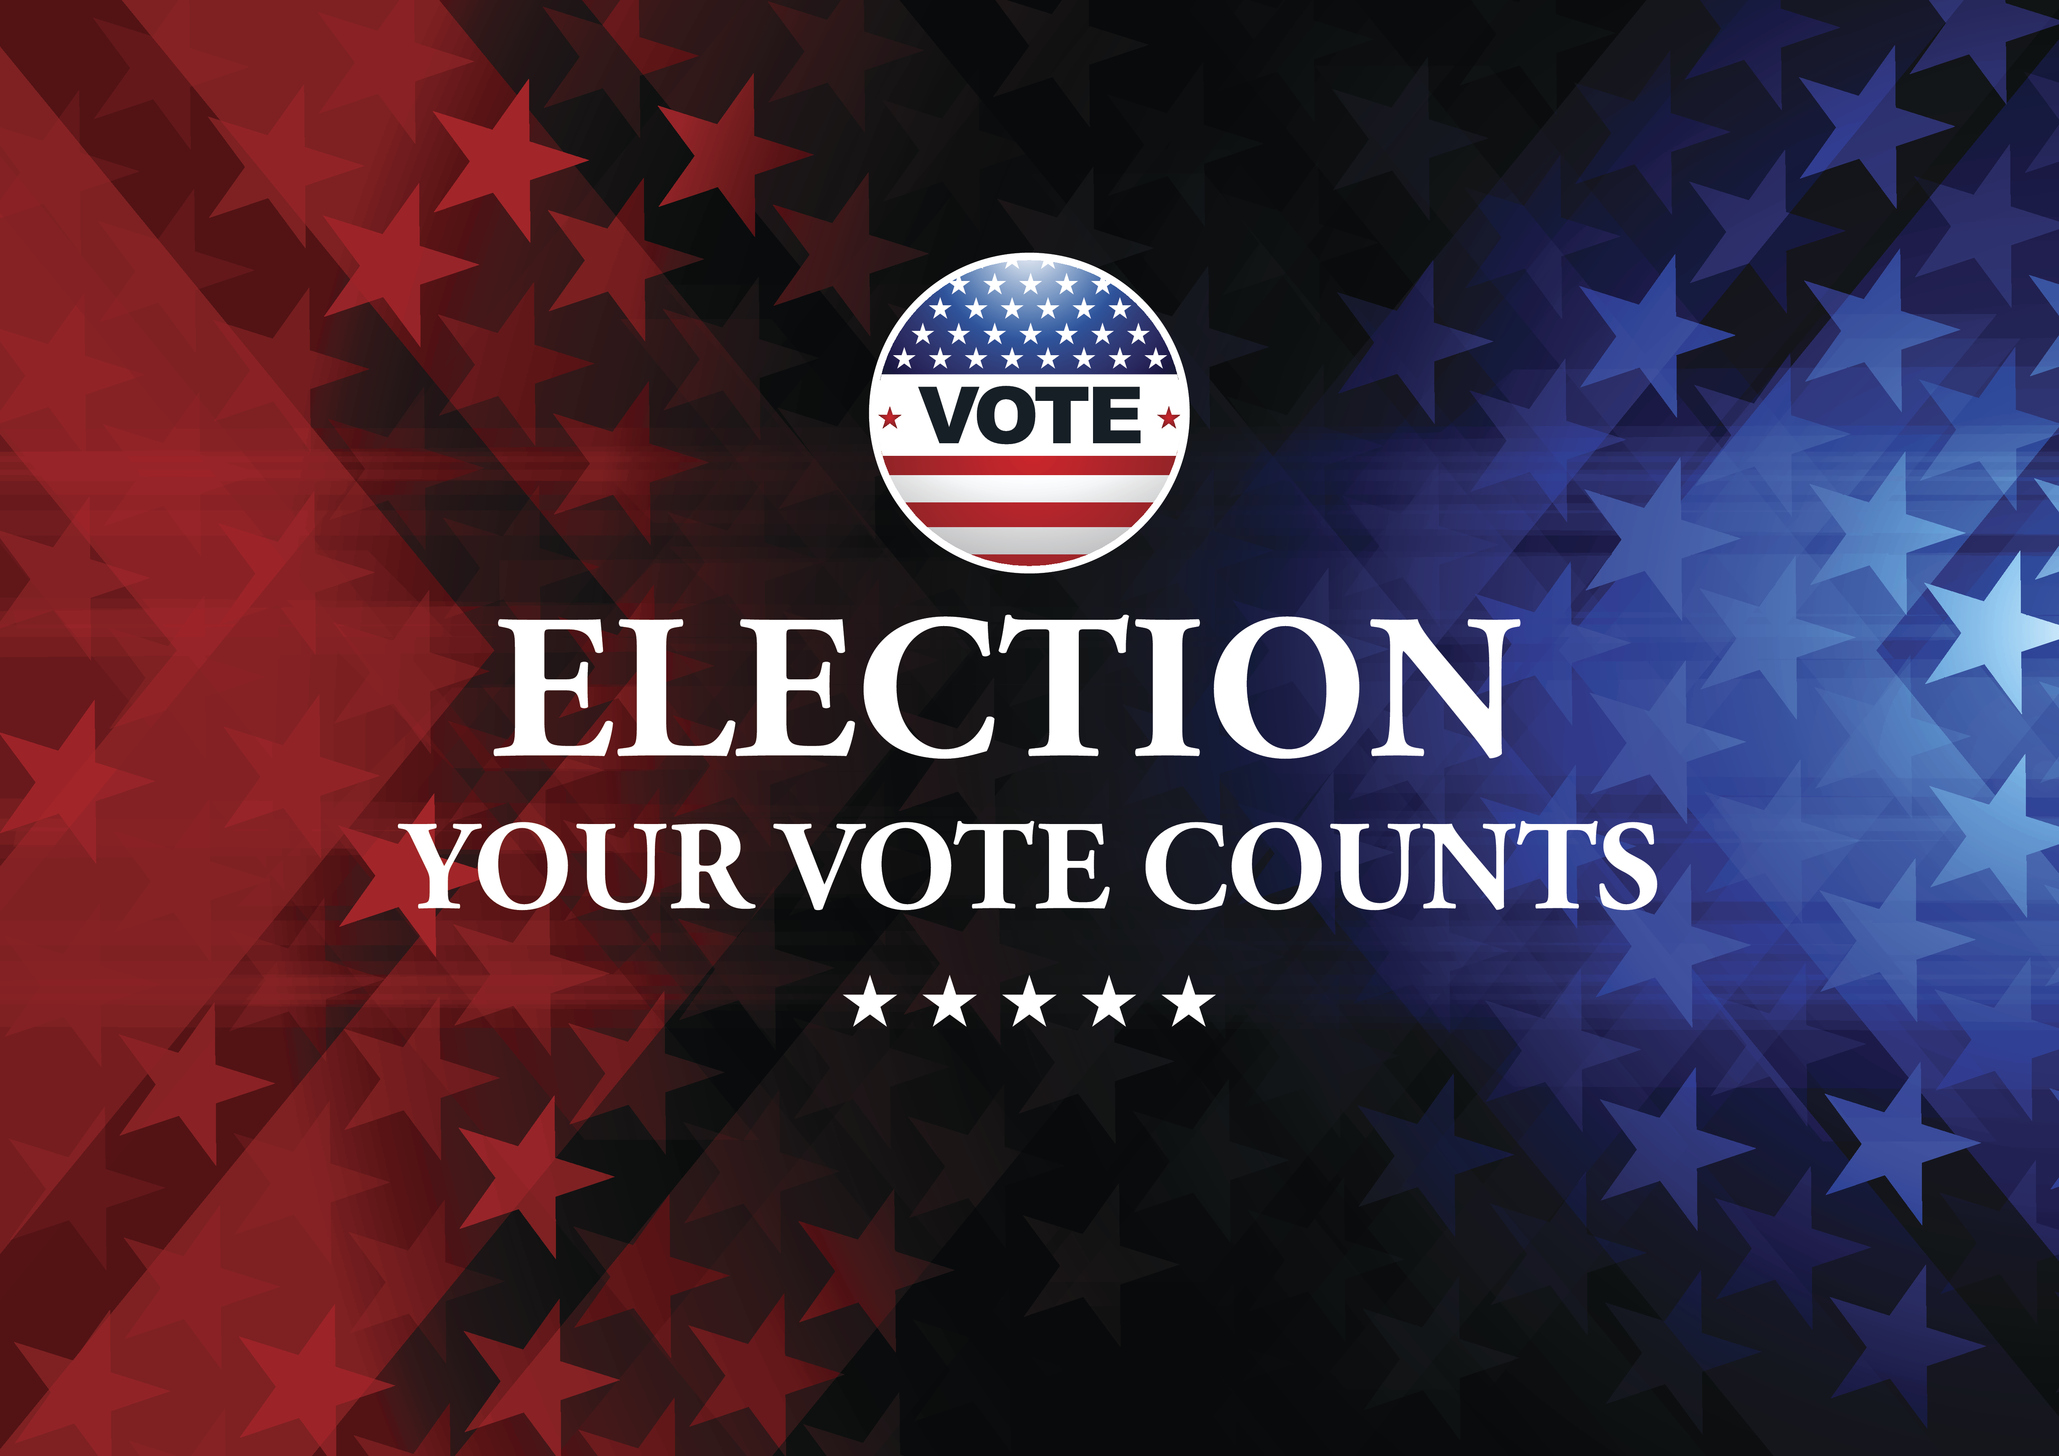 USA Election Vote Button with blue background